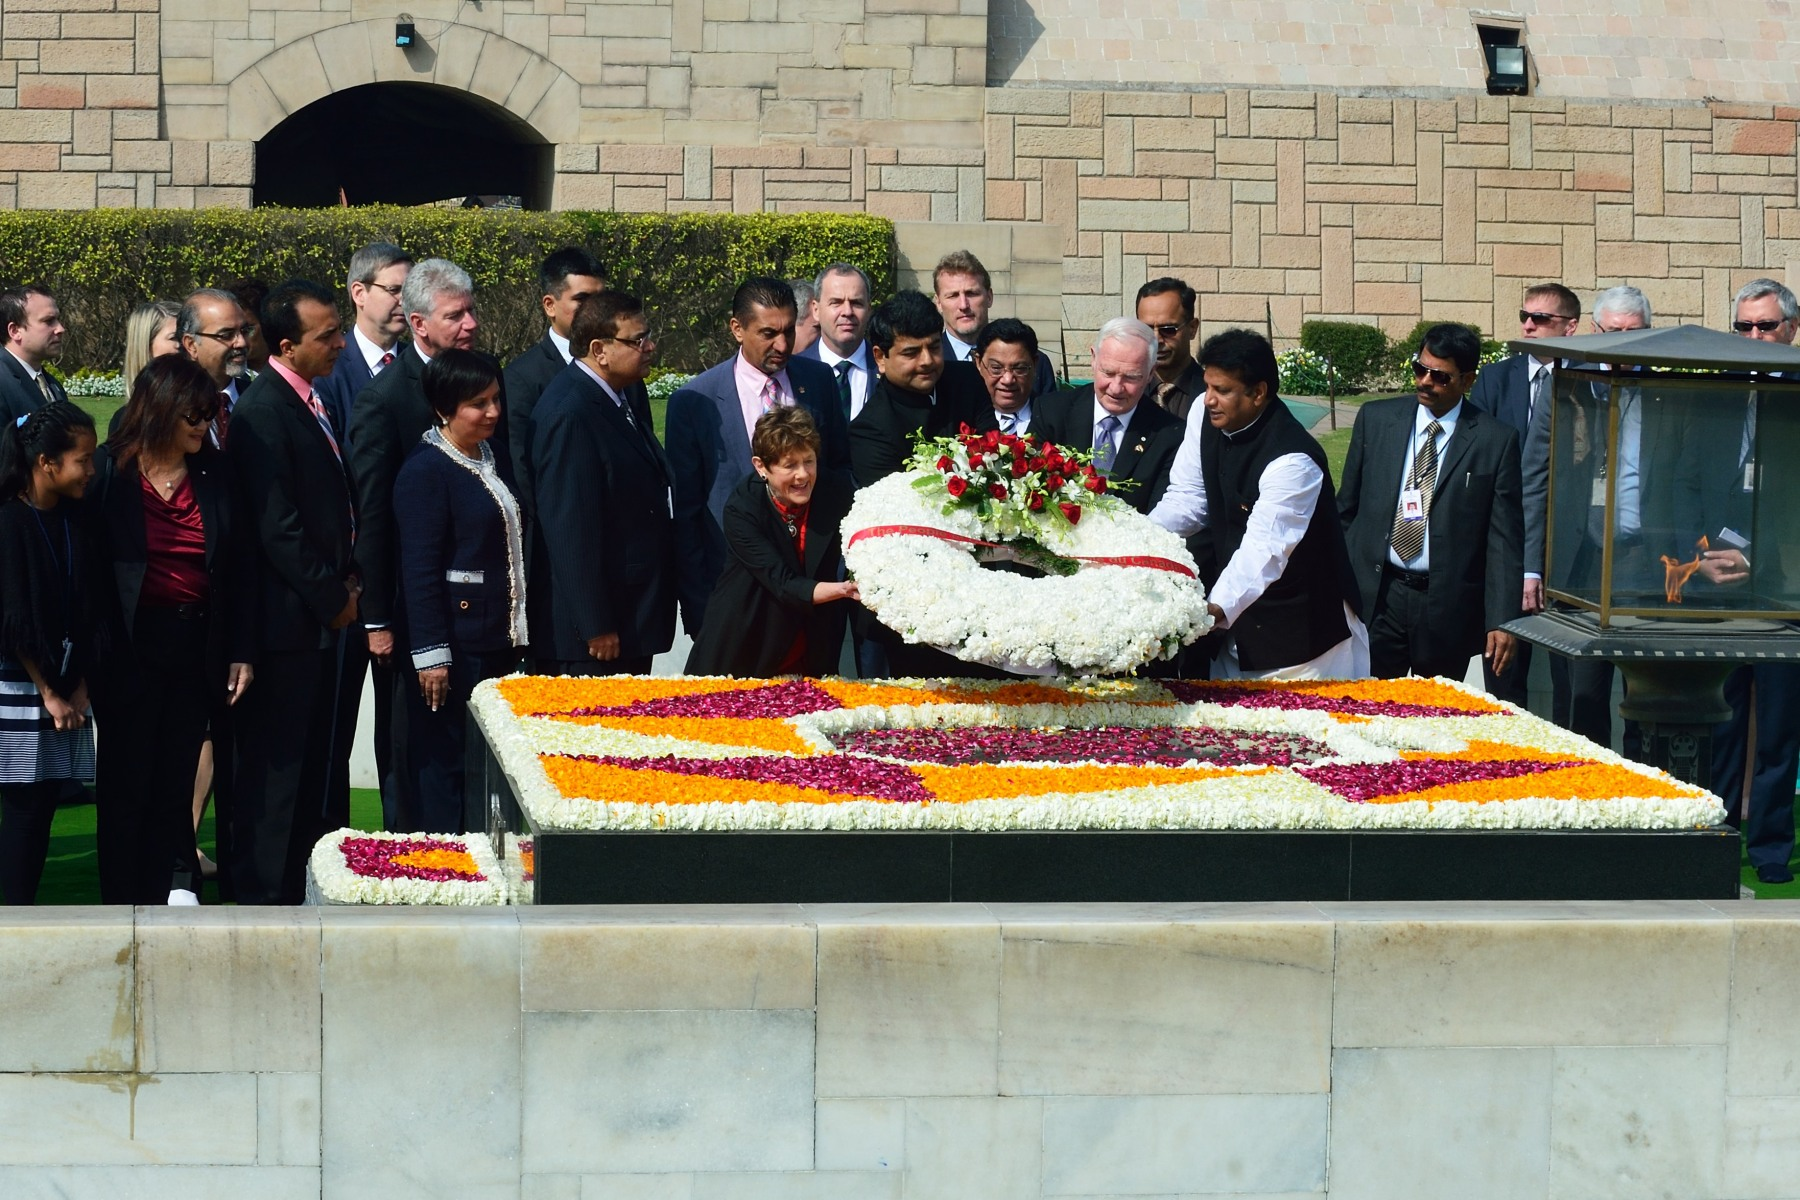 Afterwards, Their Excellencies layed a wreath on behalf of the people of Canada at the Samadhi of Mahatma Gandhi (Rajghat), a memorial built in memory of Mahatma Gandhi at the site of his cremation on the western bank of the Yamuna River, on January 31, 1948.